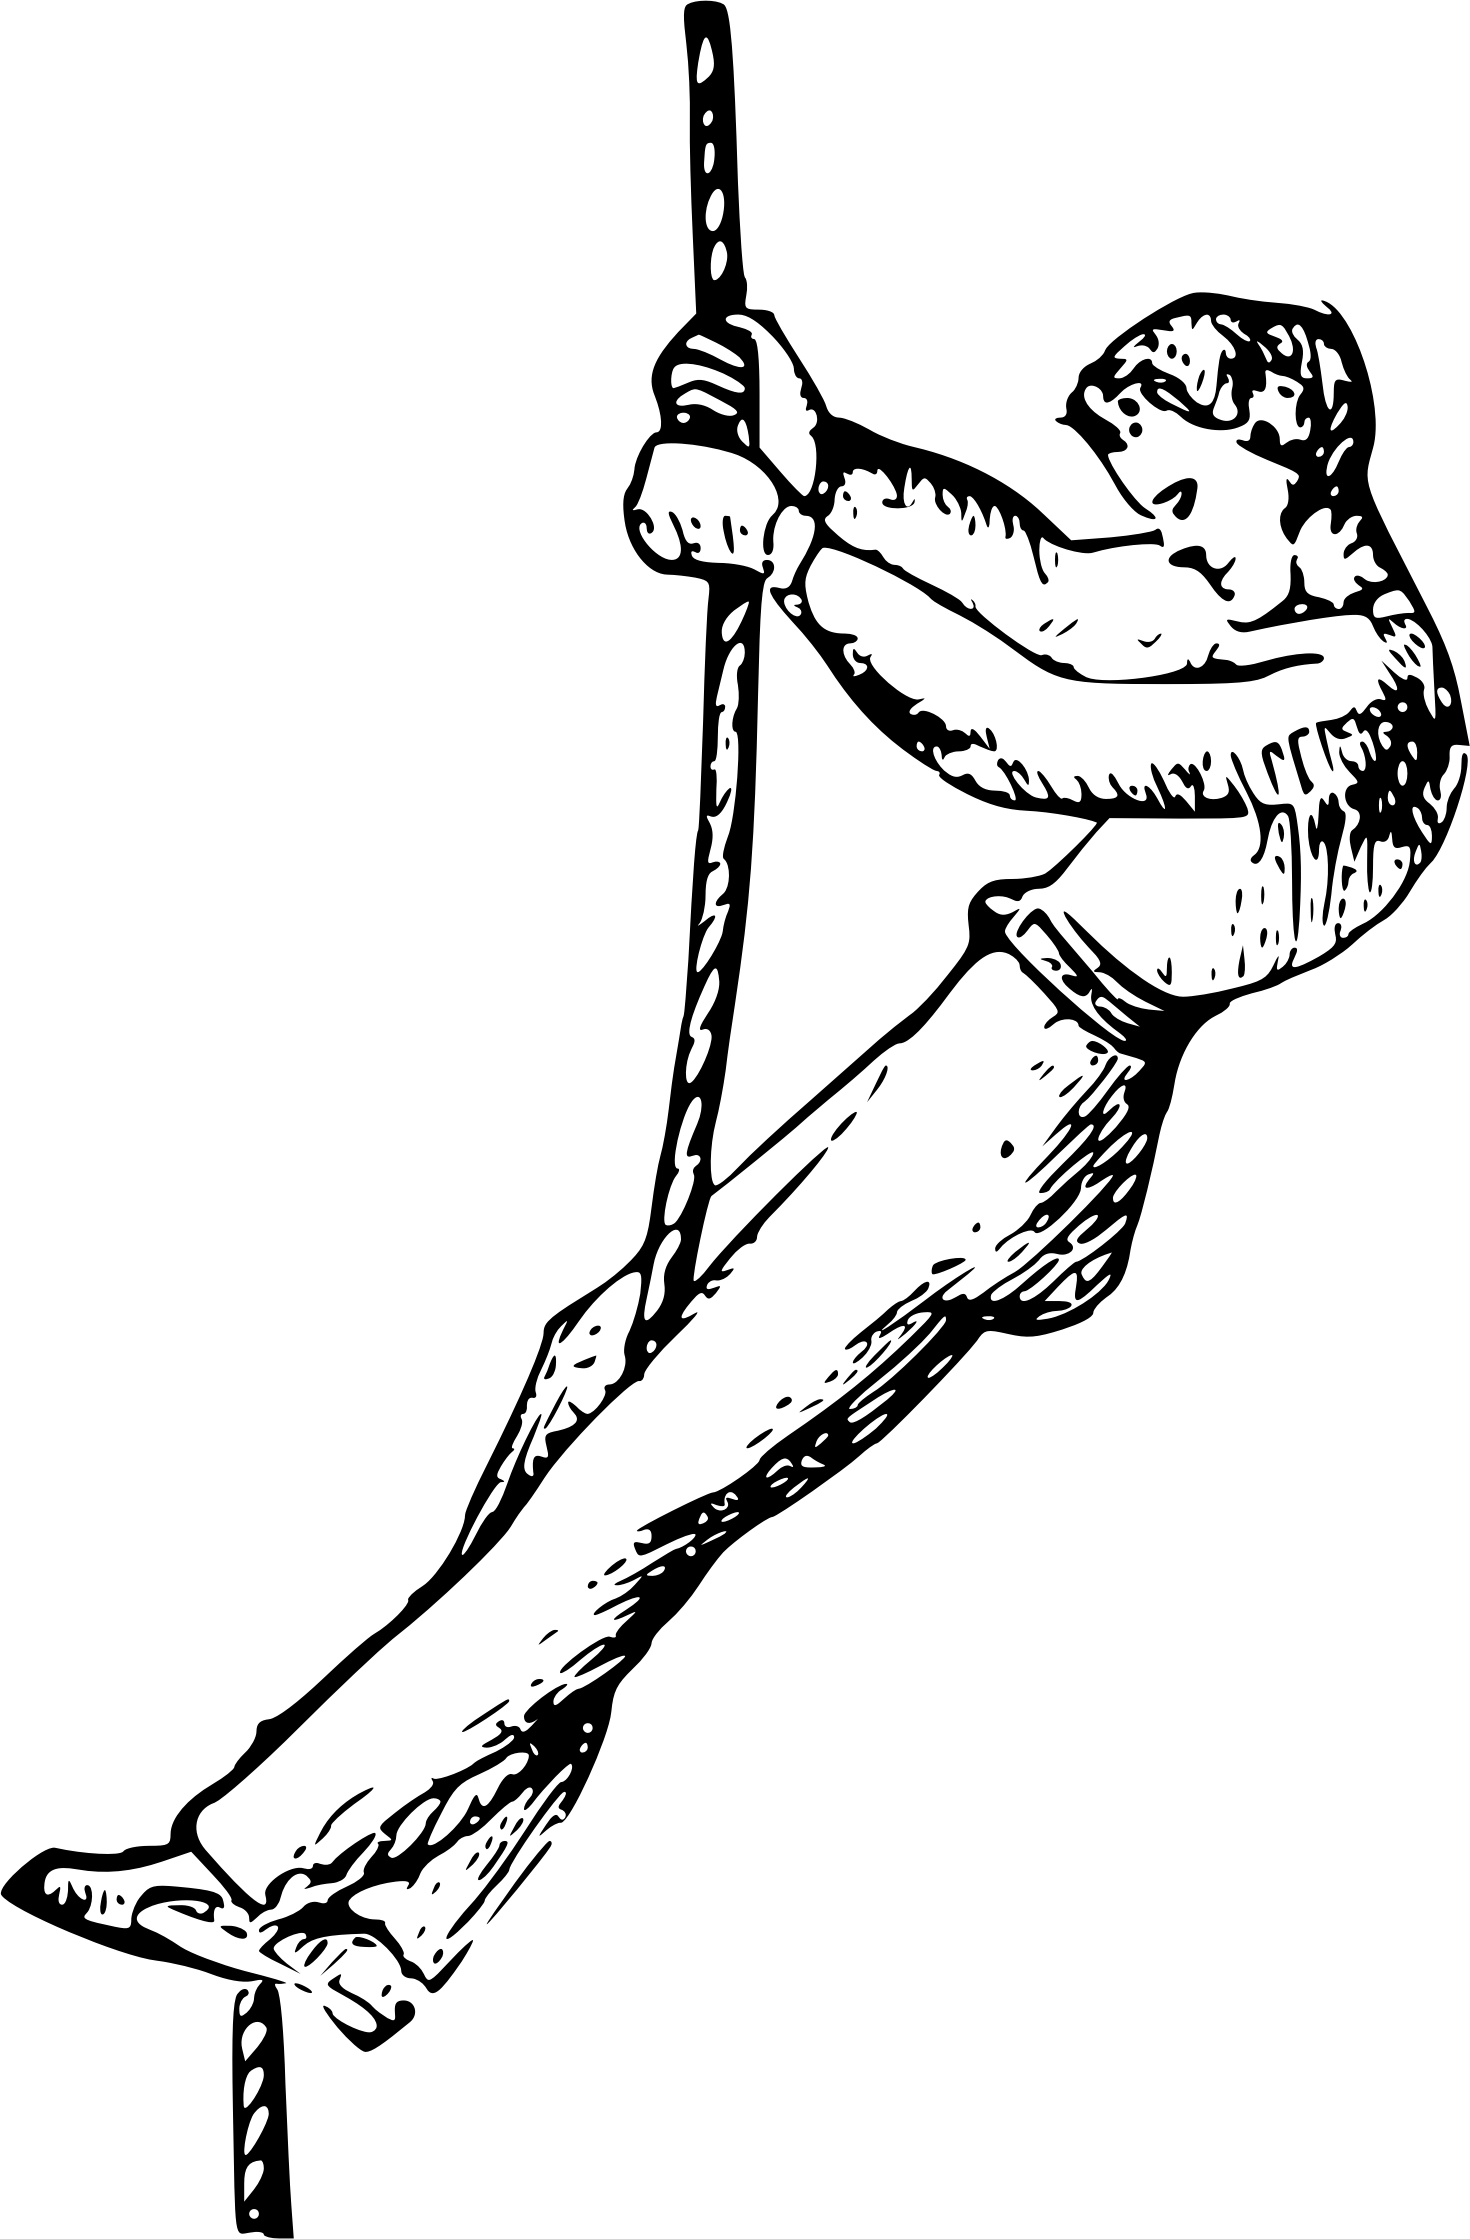 Climbing Rope Clipart